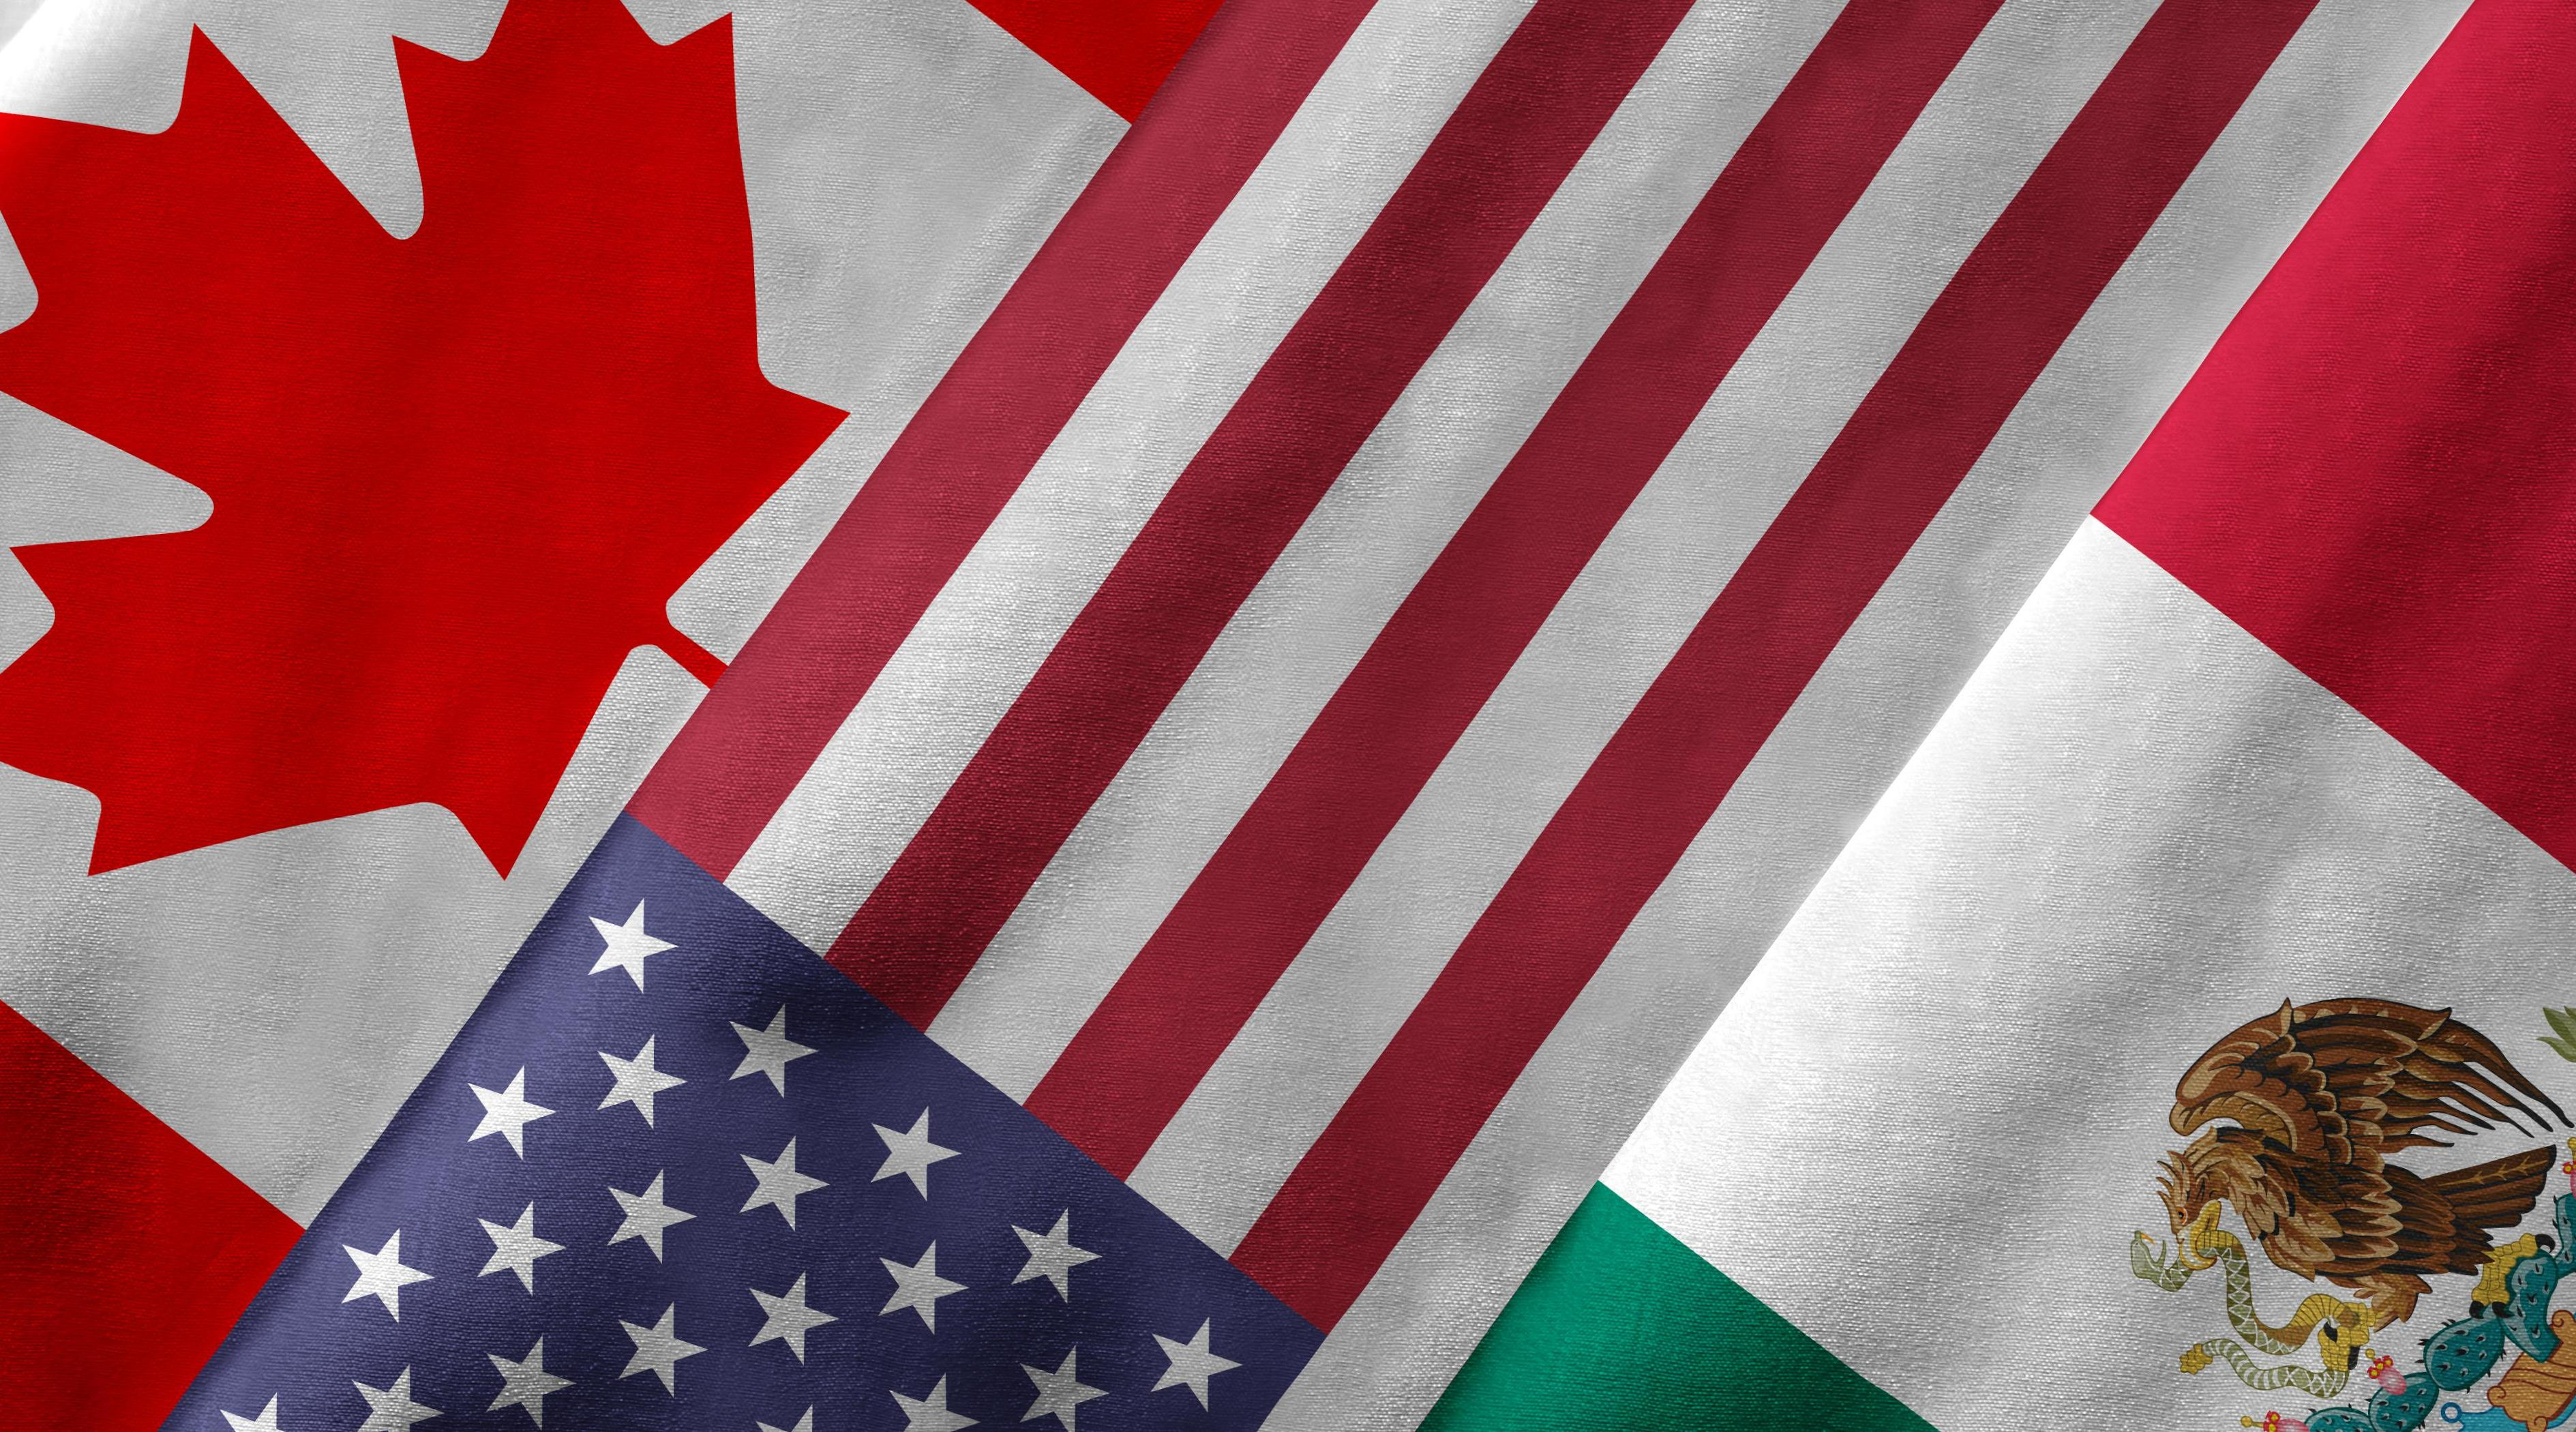 Us, Canada and Mexico Flags.